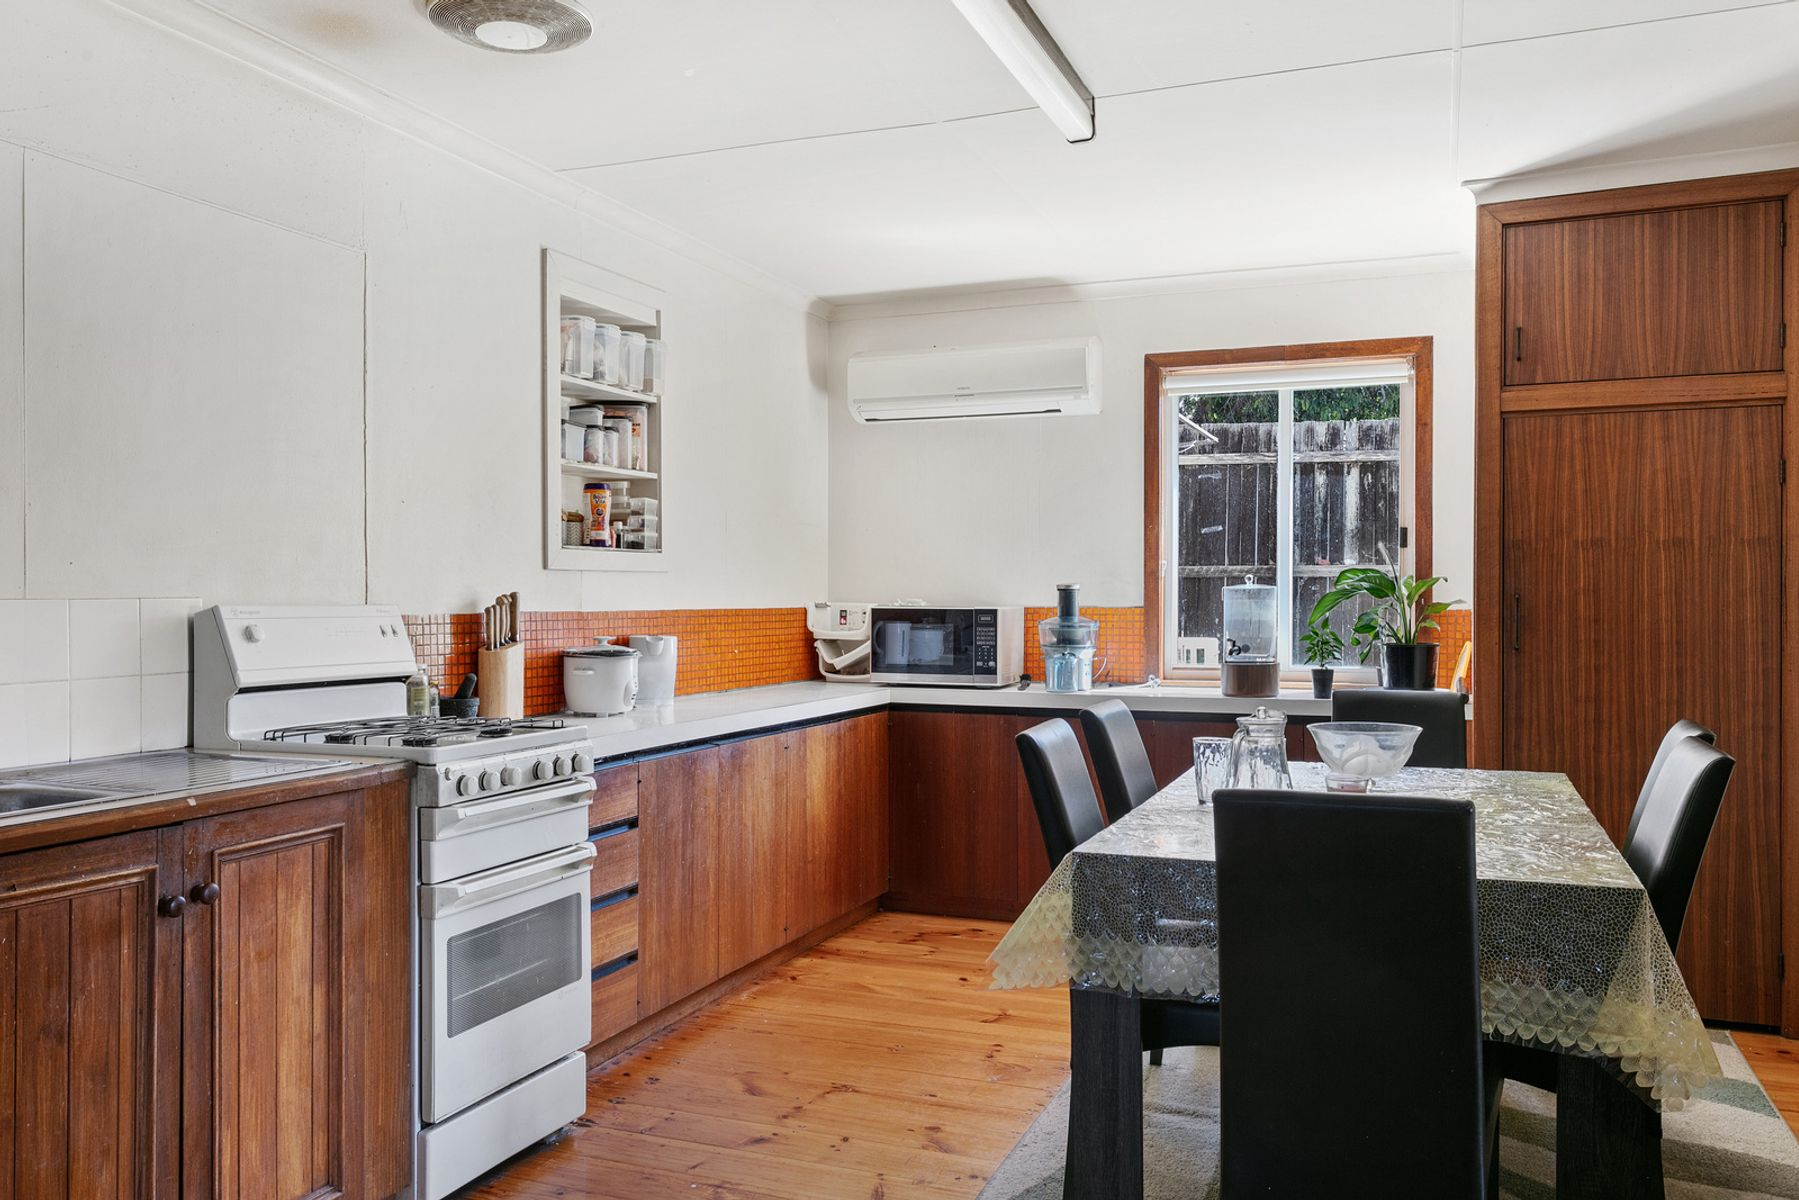 1 & 2/16A Spring Gully Road, Quarry Hill, VIC 3550